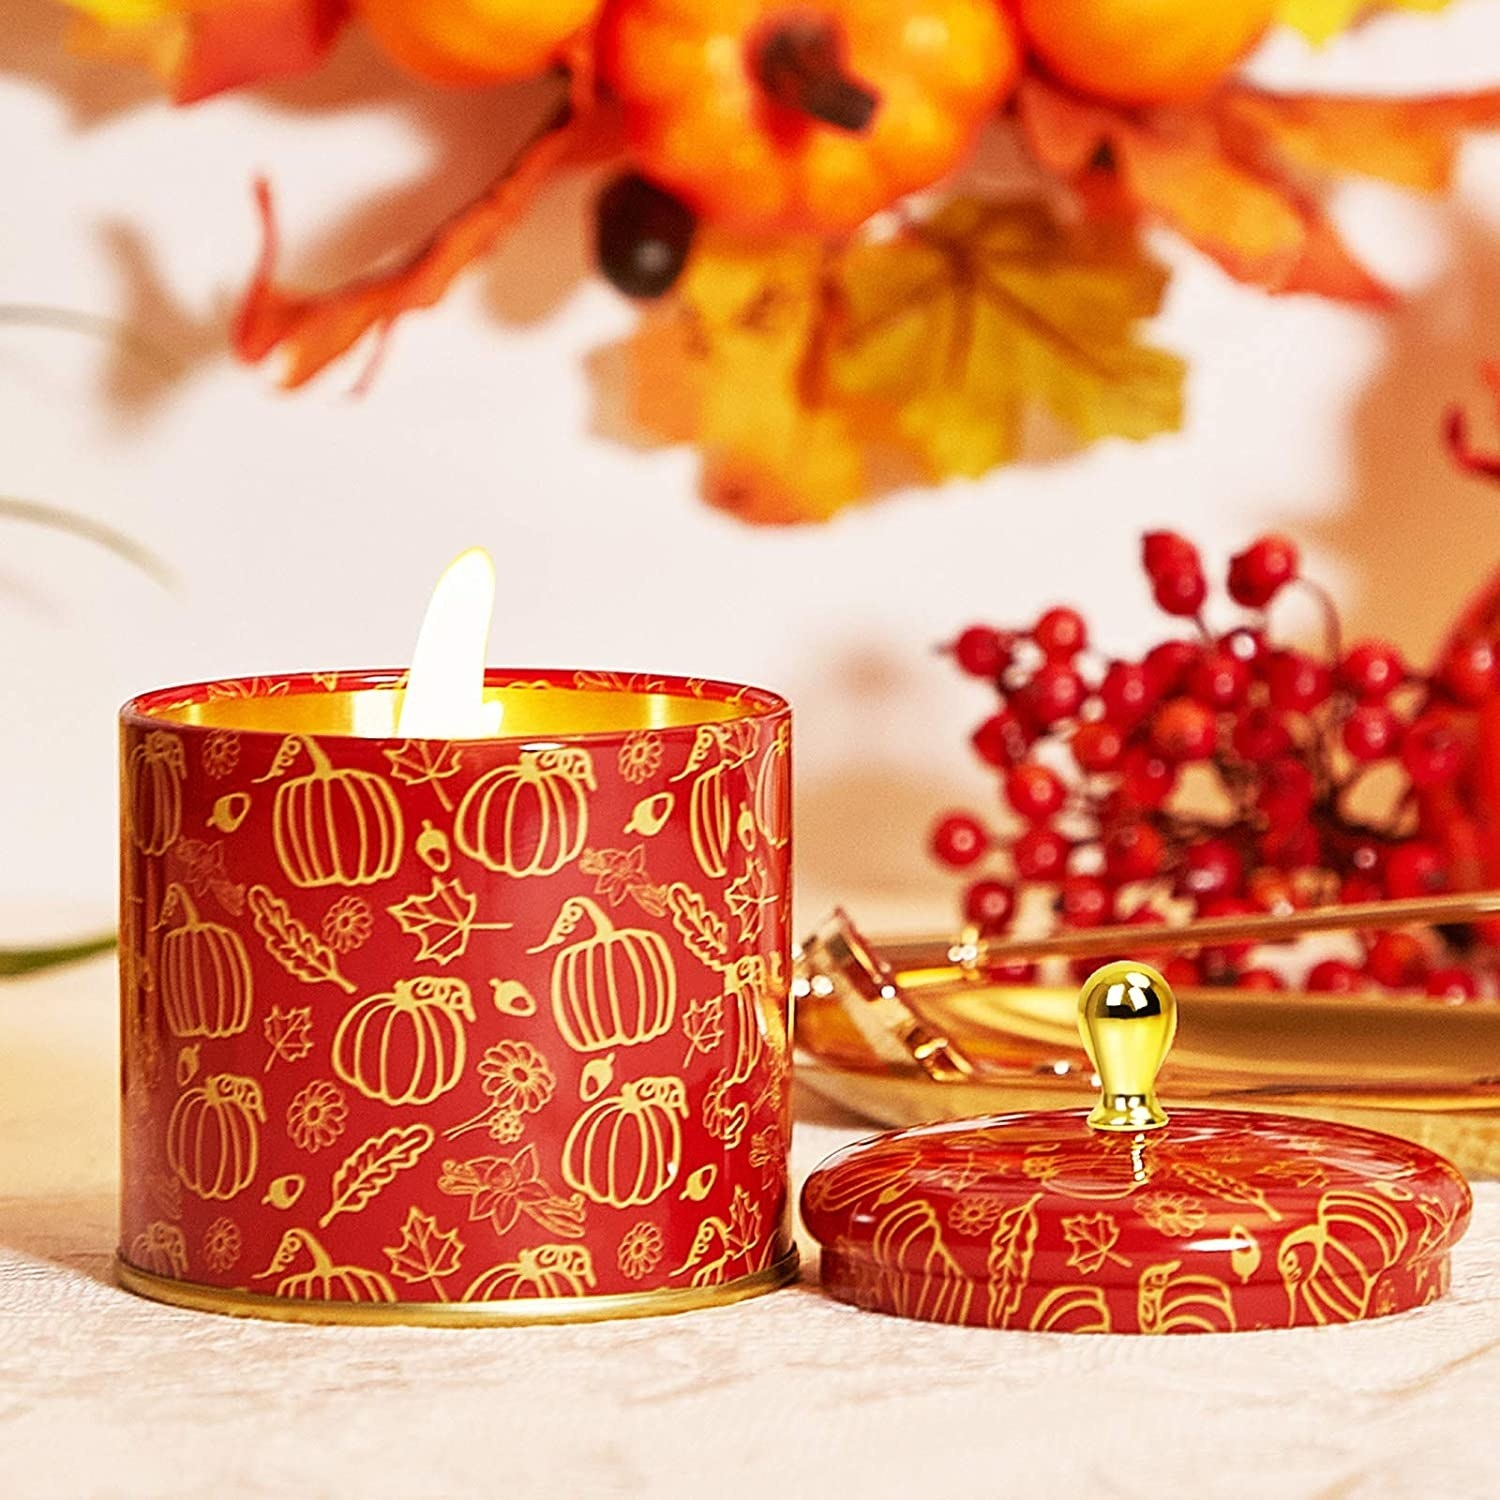 a candle in an orange jar with gold outlines of pumpkins and leaves